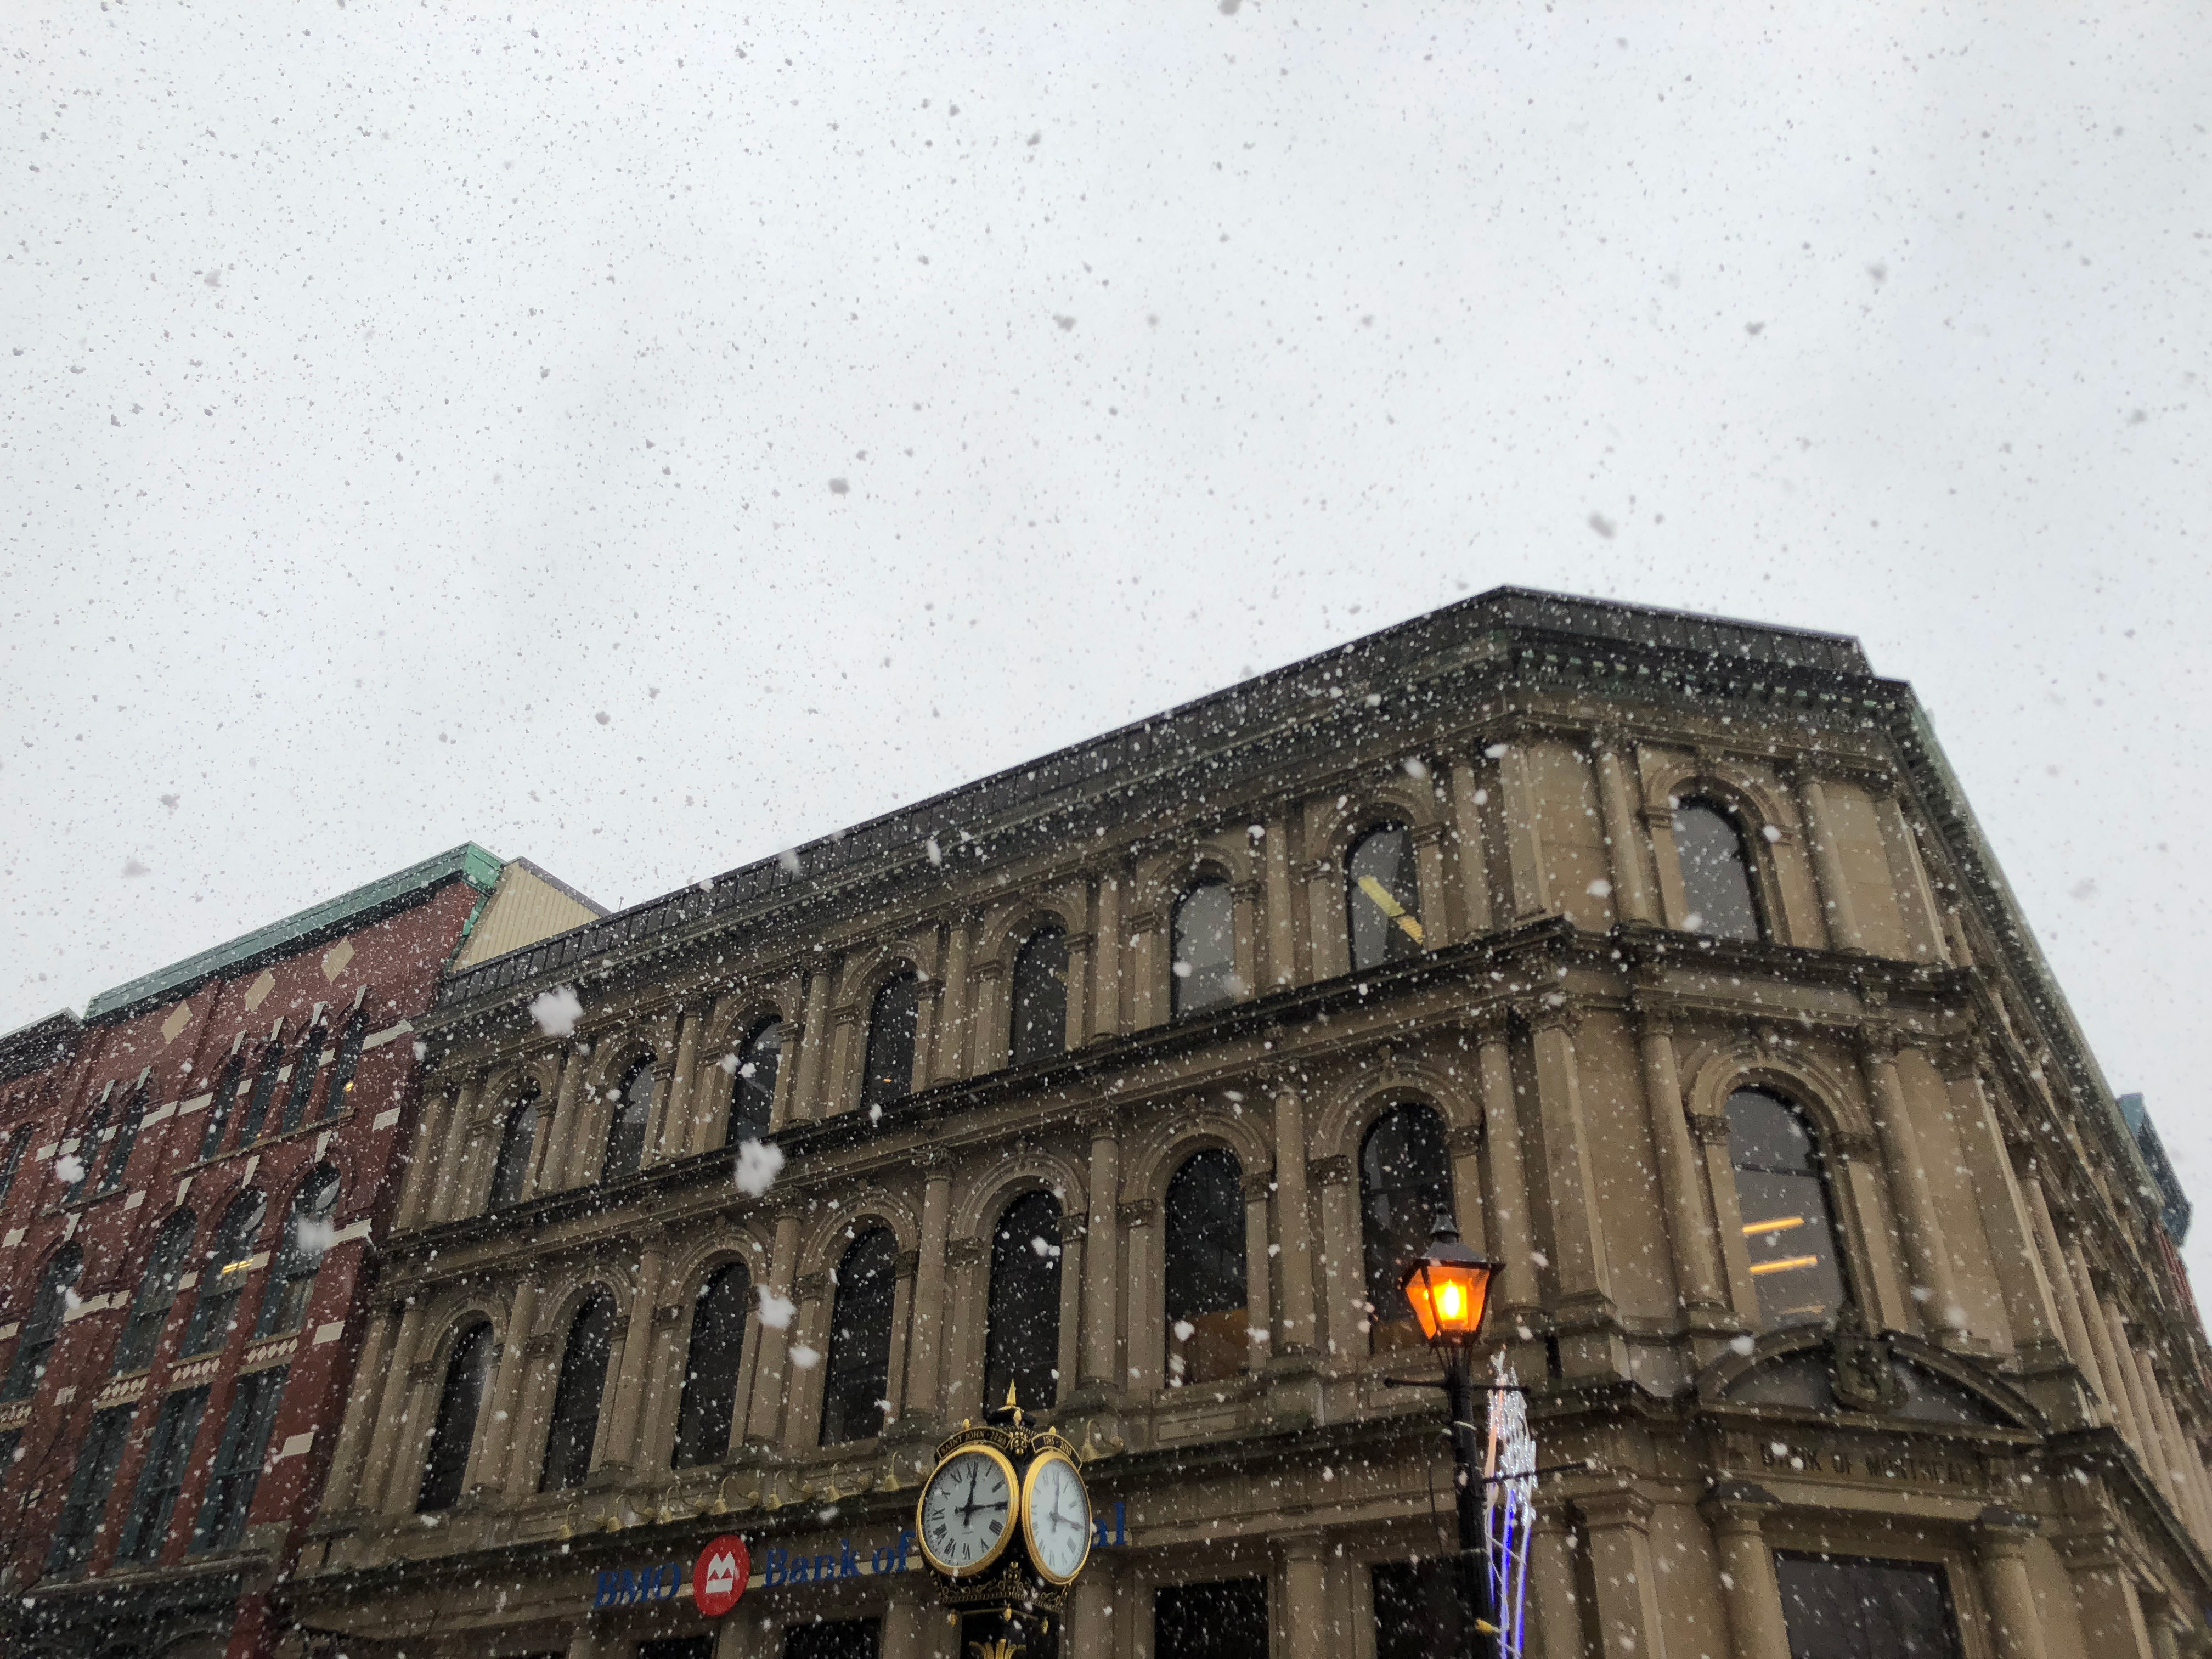 A photograph depicting Snow Falling Down on King Street Saint John